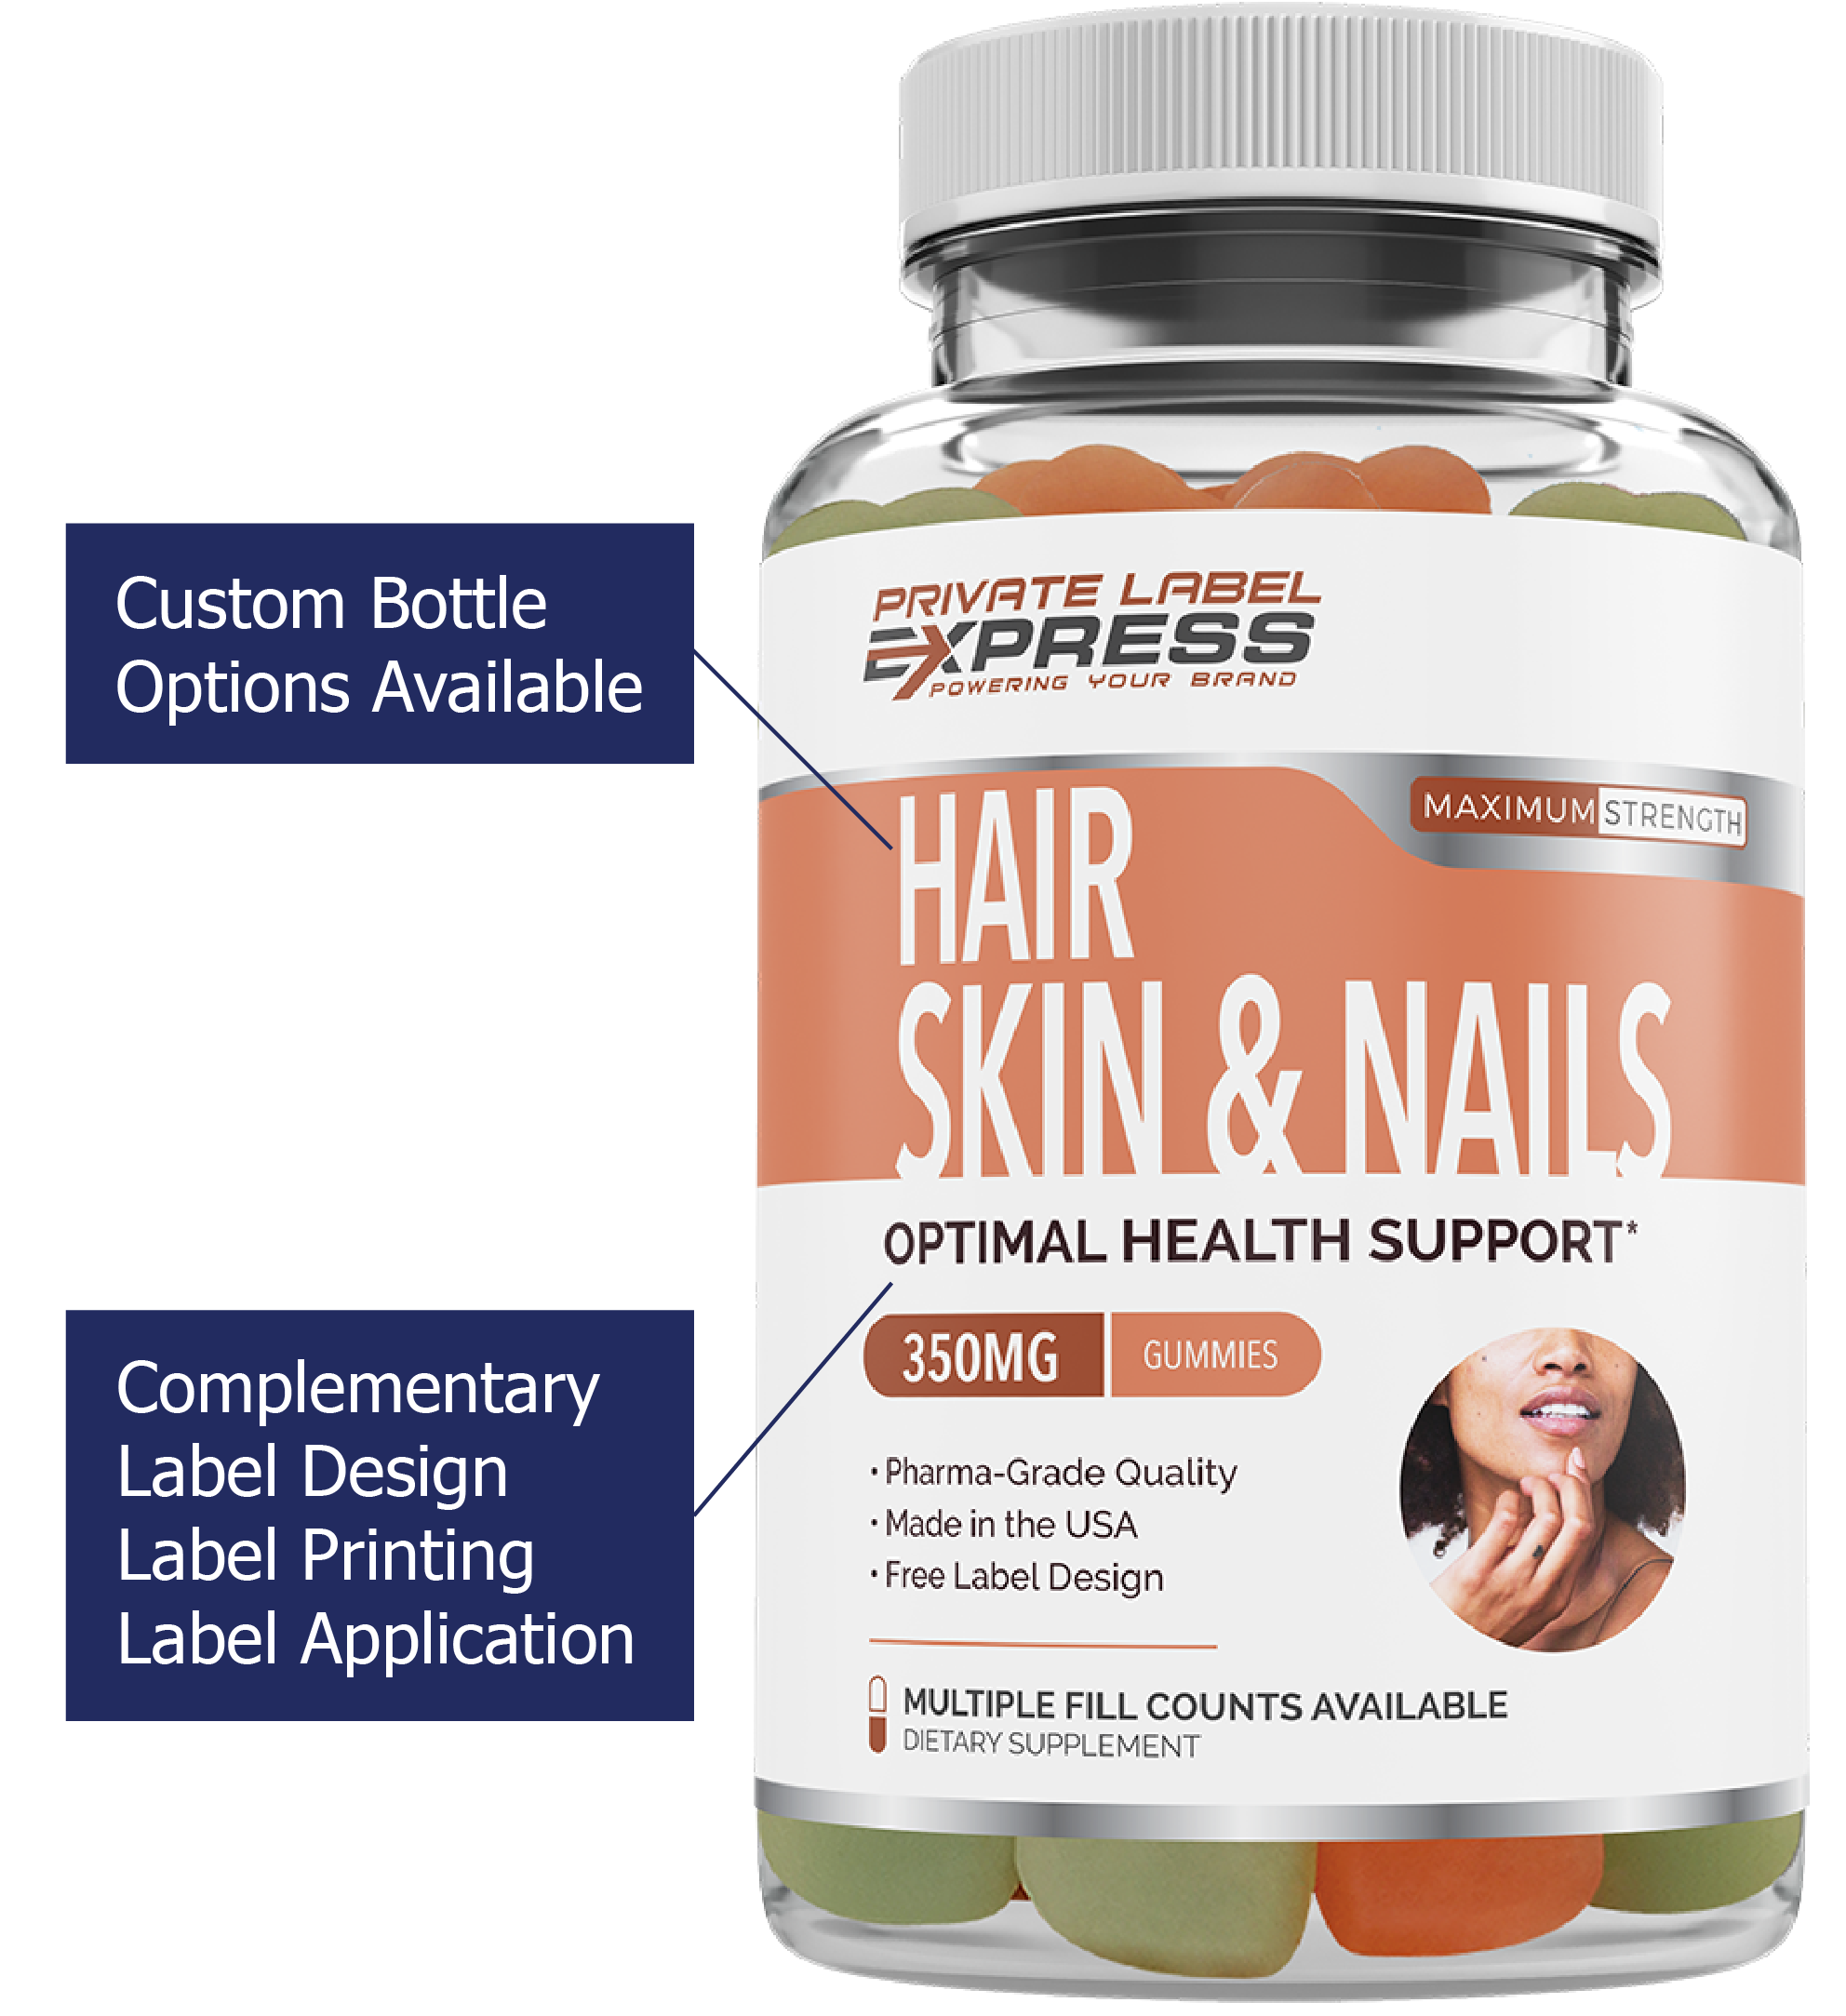 Private Label Hair Skin and Nails Supplements